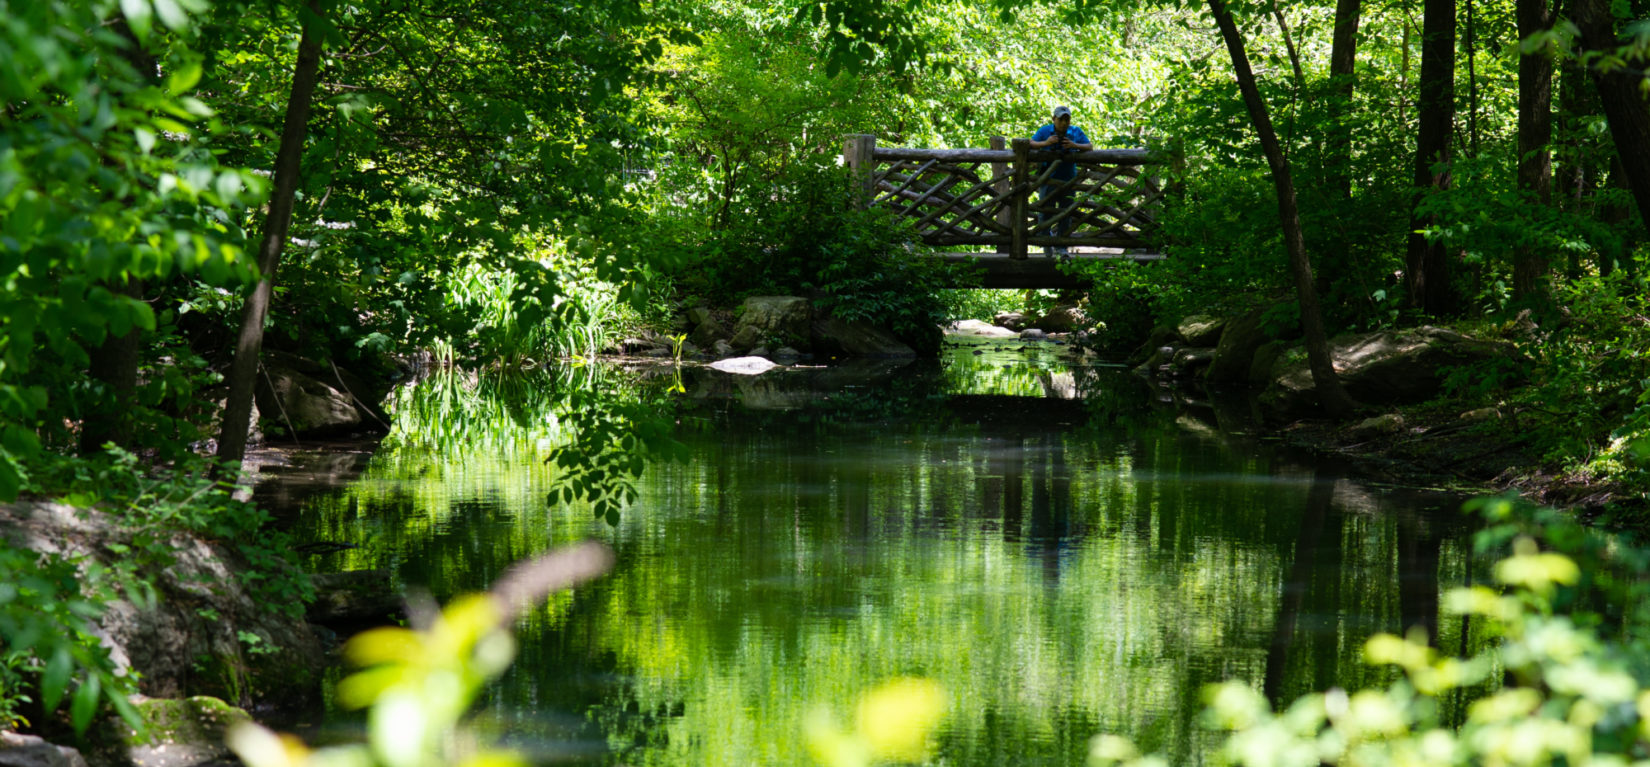 A rustic bridge spans the Loch surrounded by the lush North End of Central Park